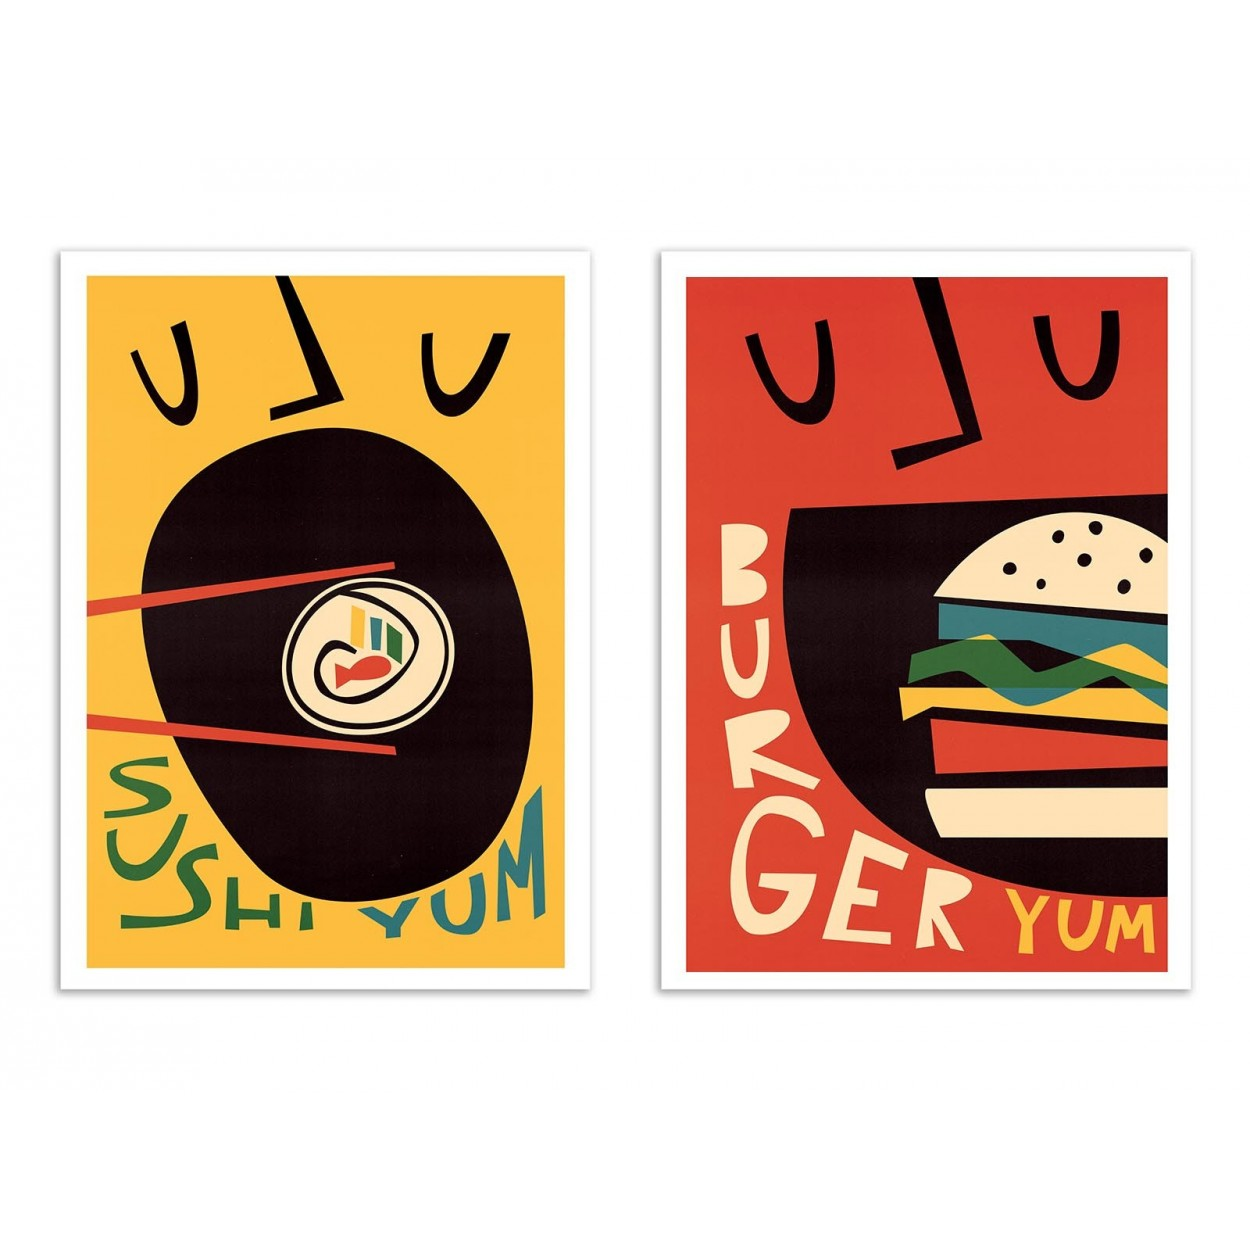 SUSHI AND BURGER - 2 Affiches d'art 30 x 40 cm